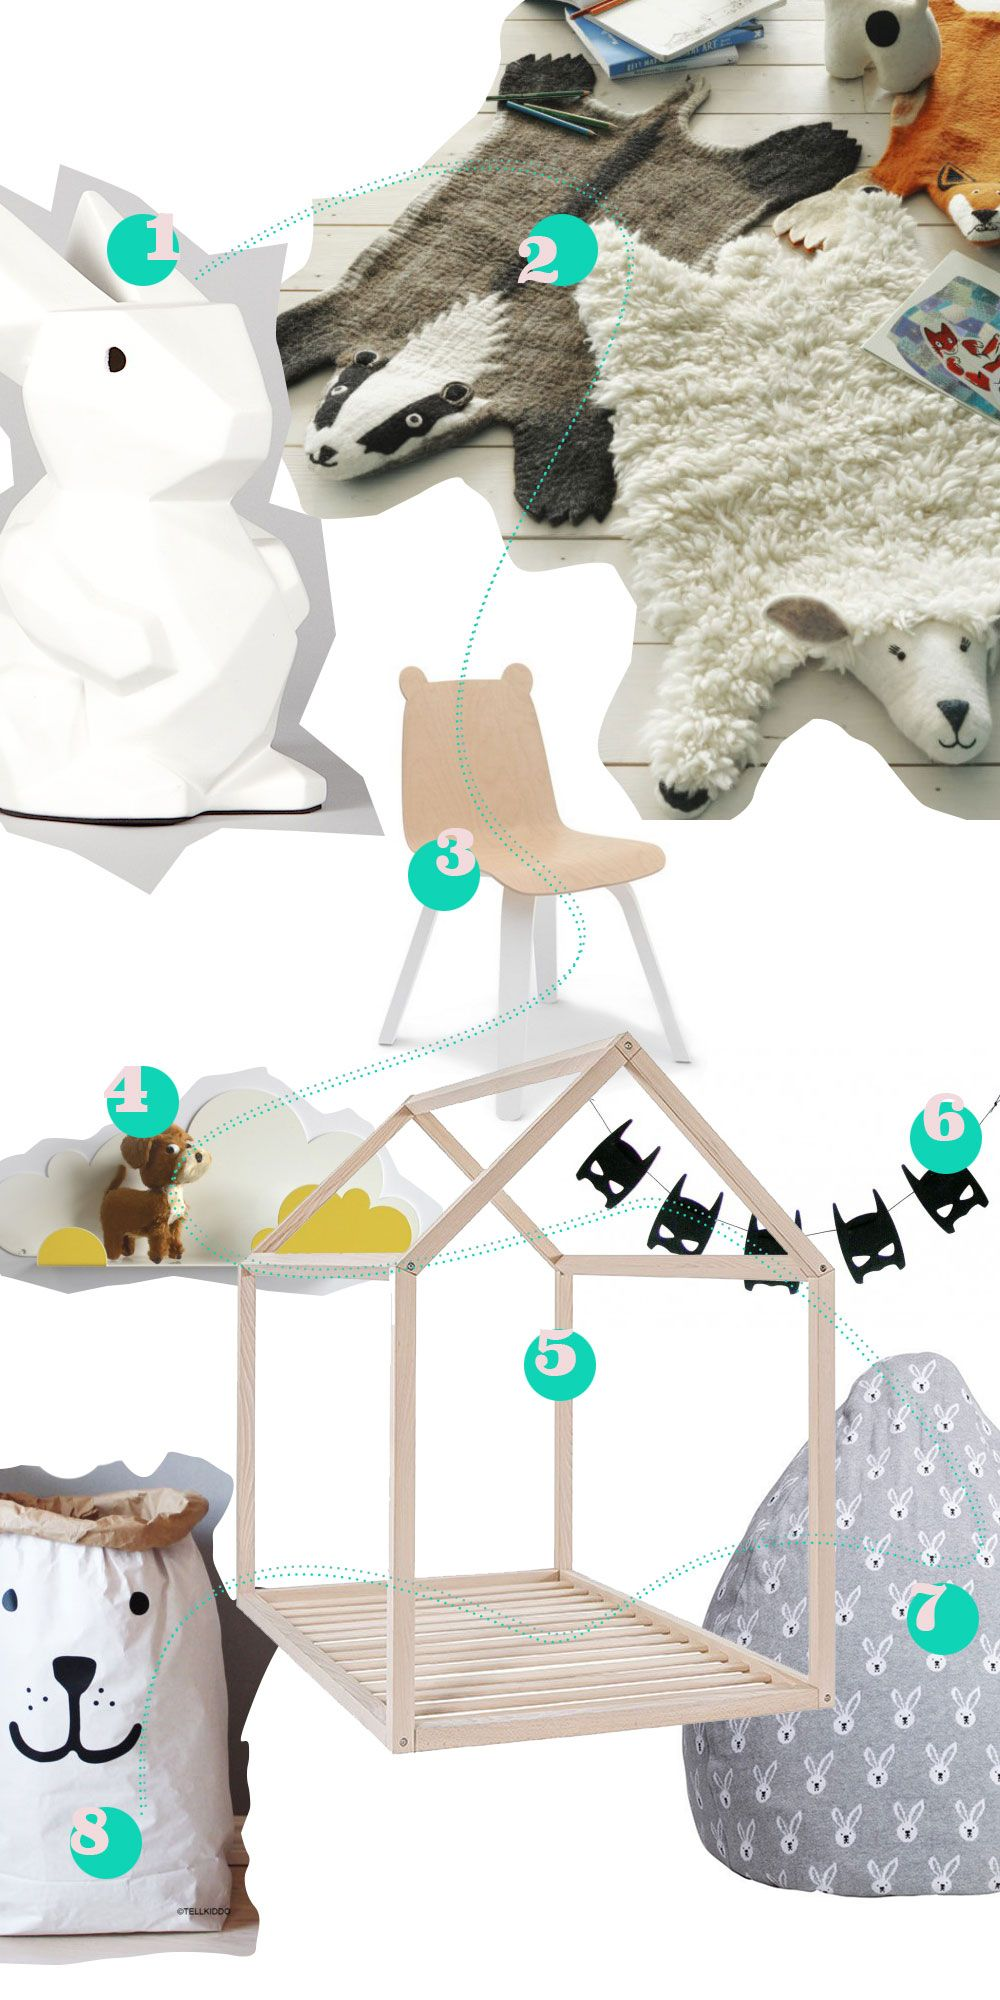 Kinderzimmer: Wir lieben Accessoires | Kidsroom, Kids rooms and Room